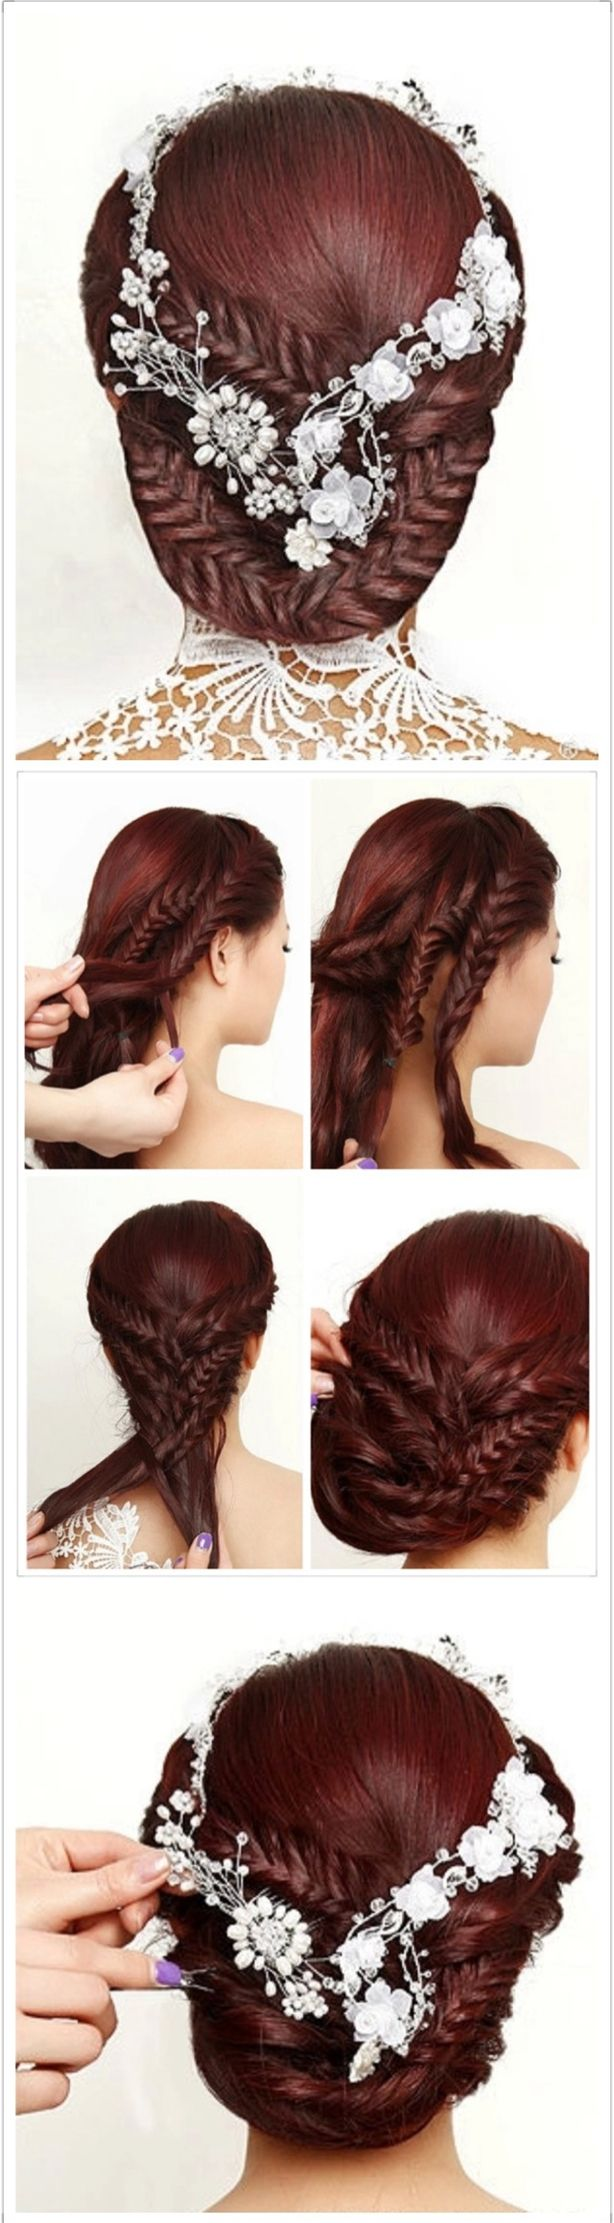 Hair styles for long hair hairstyles. Re-pin if you like. Via Inweddingdress.com #hairstyles